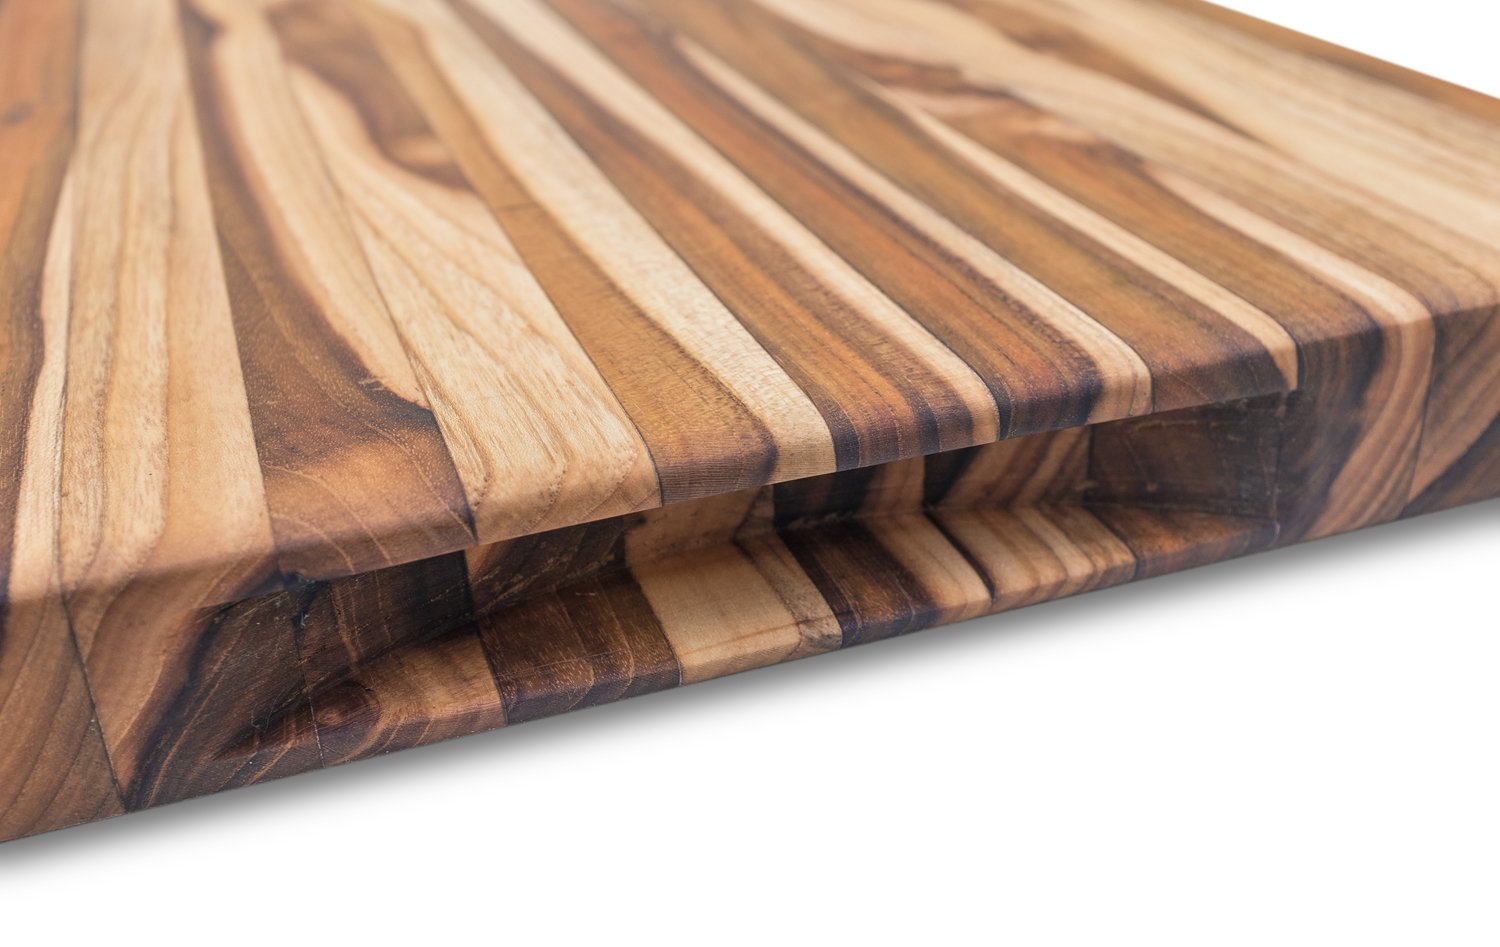 JD&Sons Teak Wood Large Cutting Board Perfect for Home Chefs & Professionals Gentle to Knife Durable Cut Board (20x15x1.5 in.) by JD&Sons (Image #4)